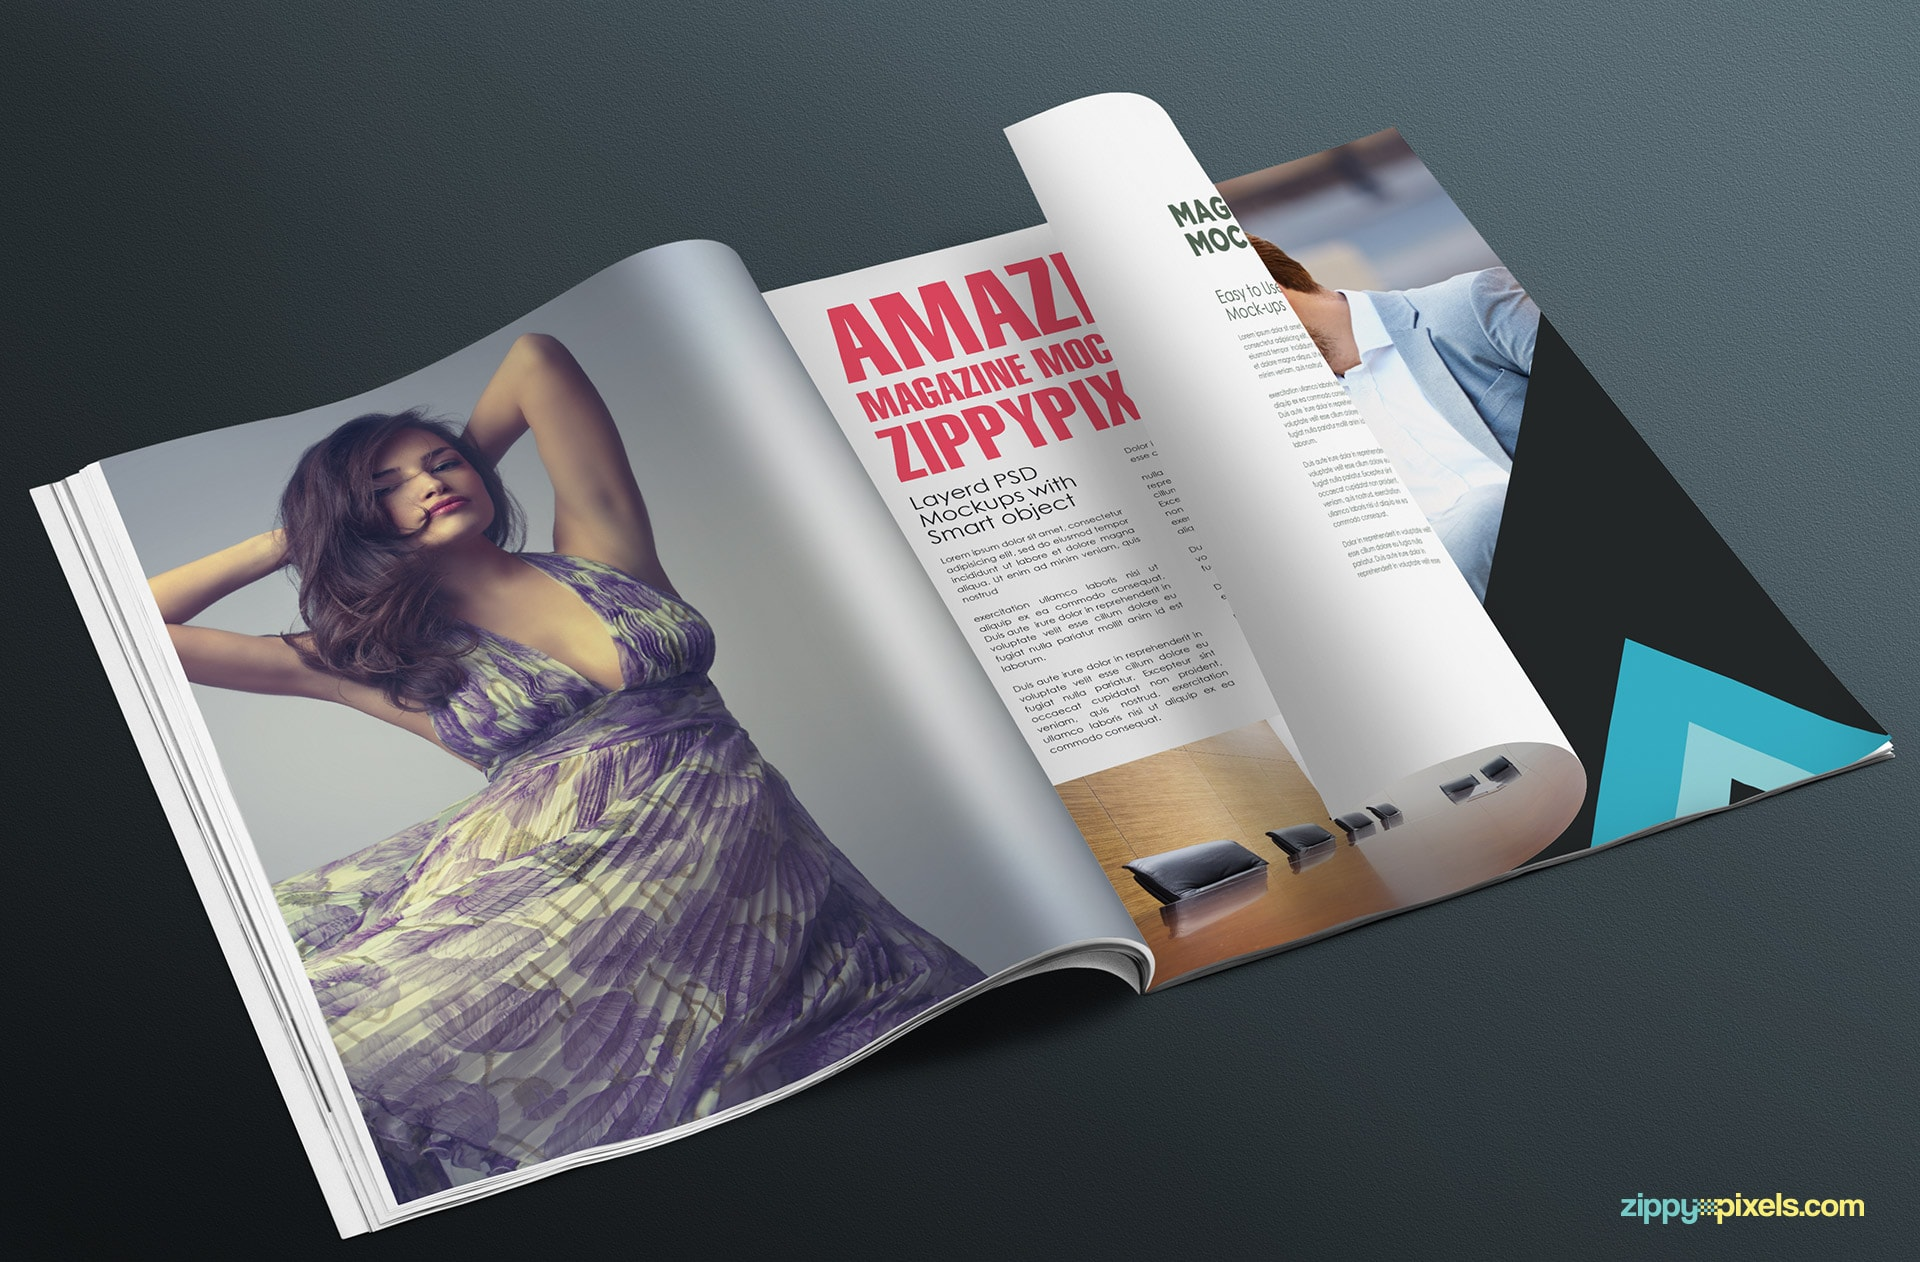 magazine mockups made with smart objects